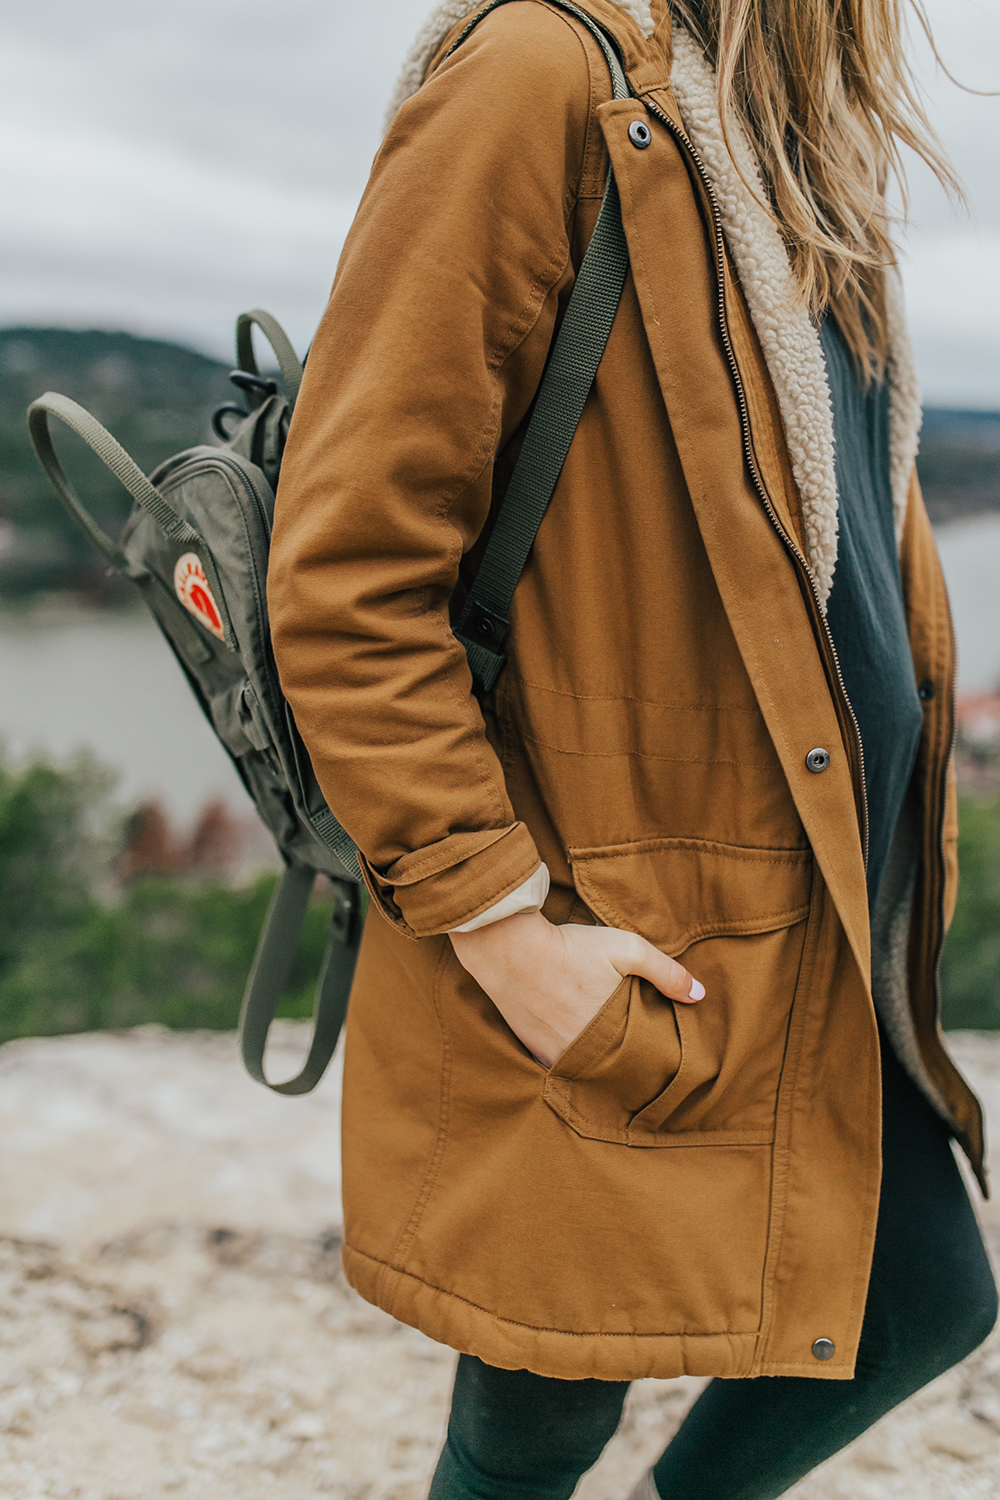 livvyland-blog-olivia-watson-austin-texas-fashion-lifestyle-blogger-patagonia-prarie-dawn-jacket-winter-hike-mount-bonnell-3